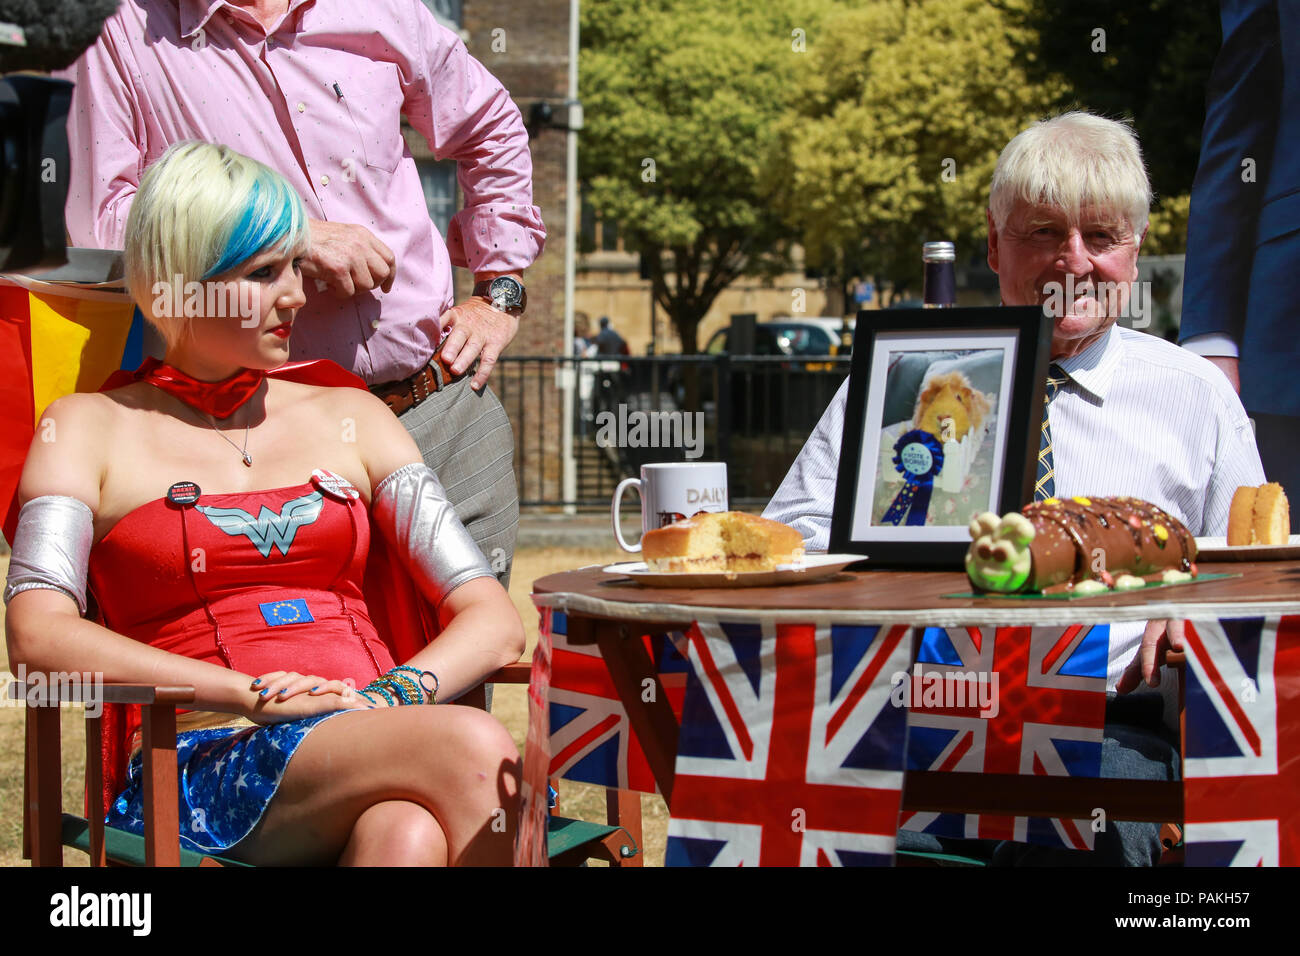 London, UK. 24th July, 2018. EU Supergirl Madeleina Kay and Stanley Johnson, father of Boris Johnson, are interviewed for the last ever broadcast of BBC2 news programme the Daily Politics on College Green in Westminster. The BBC announced last week that the BBC2 lunchtime slot will be filled from September by a new show called Politics Live. Credit: Mark Kerrison/Alamy Live News - Stock Image